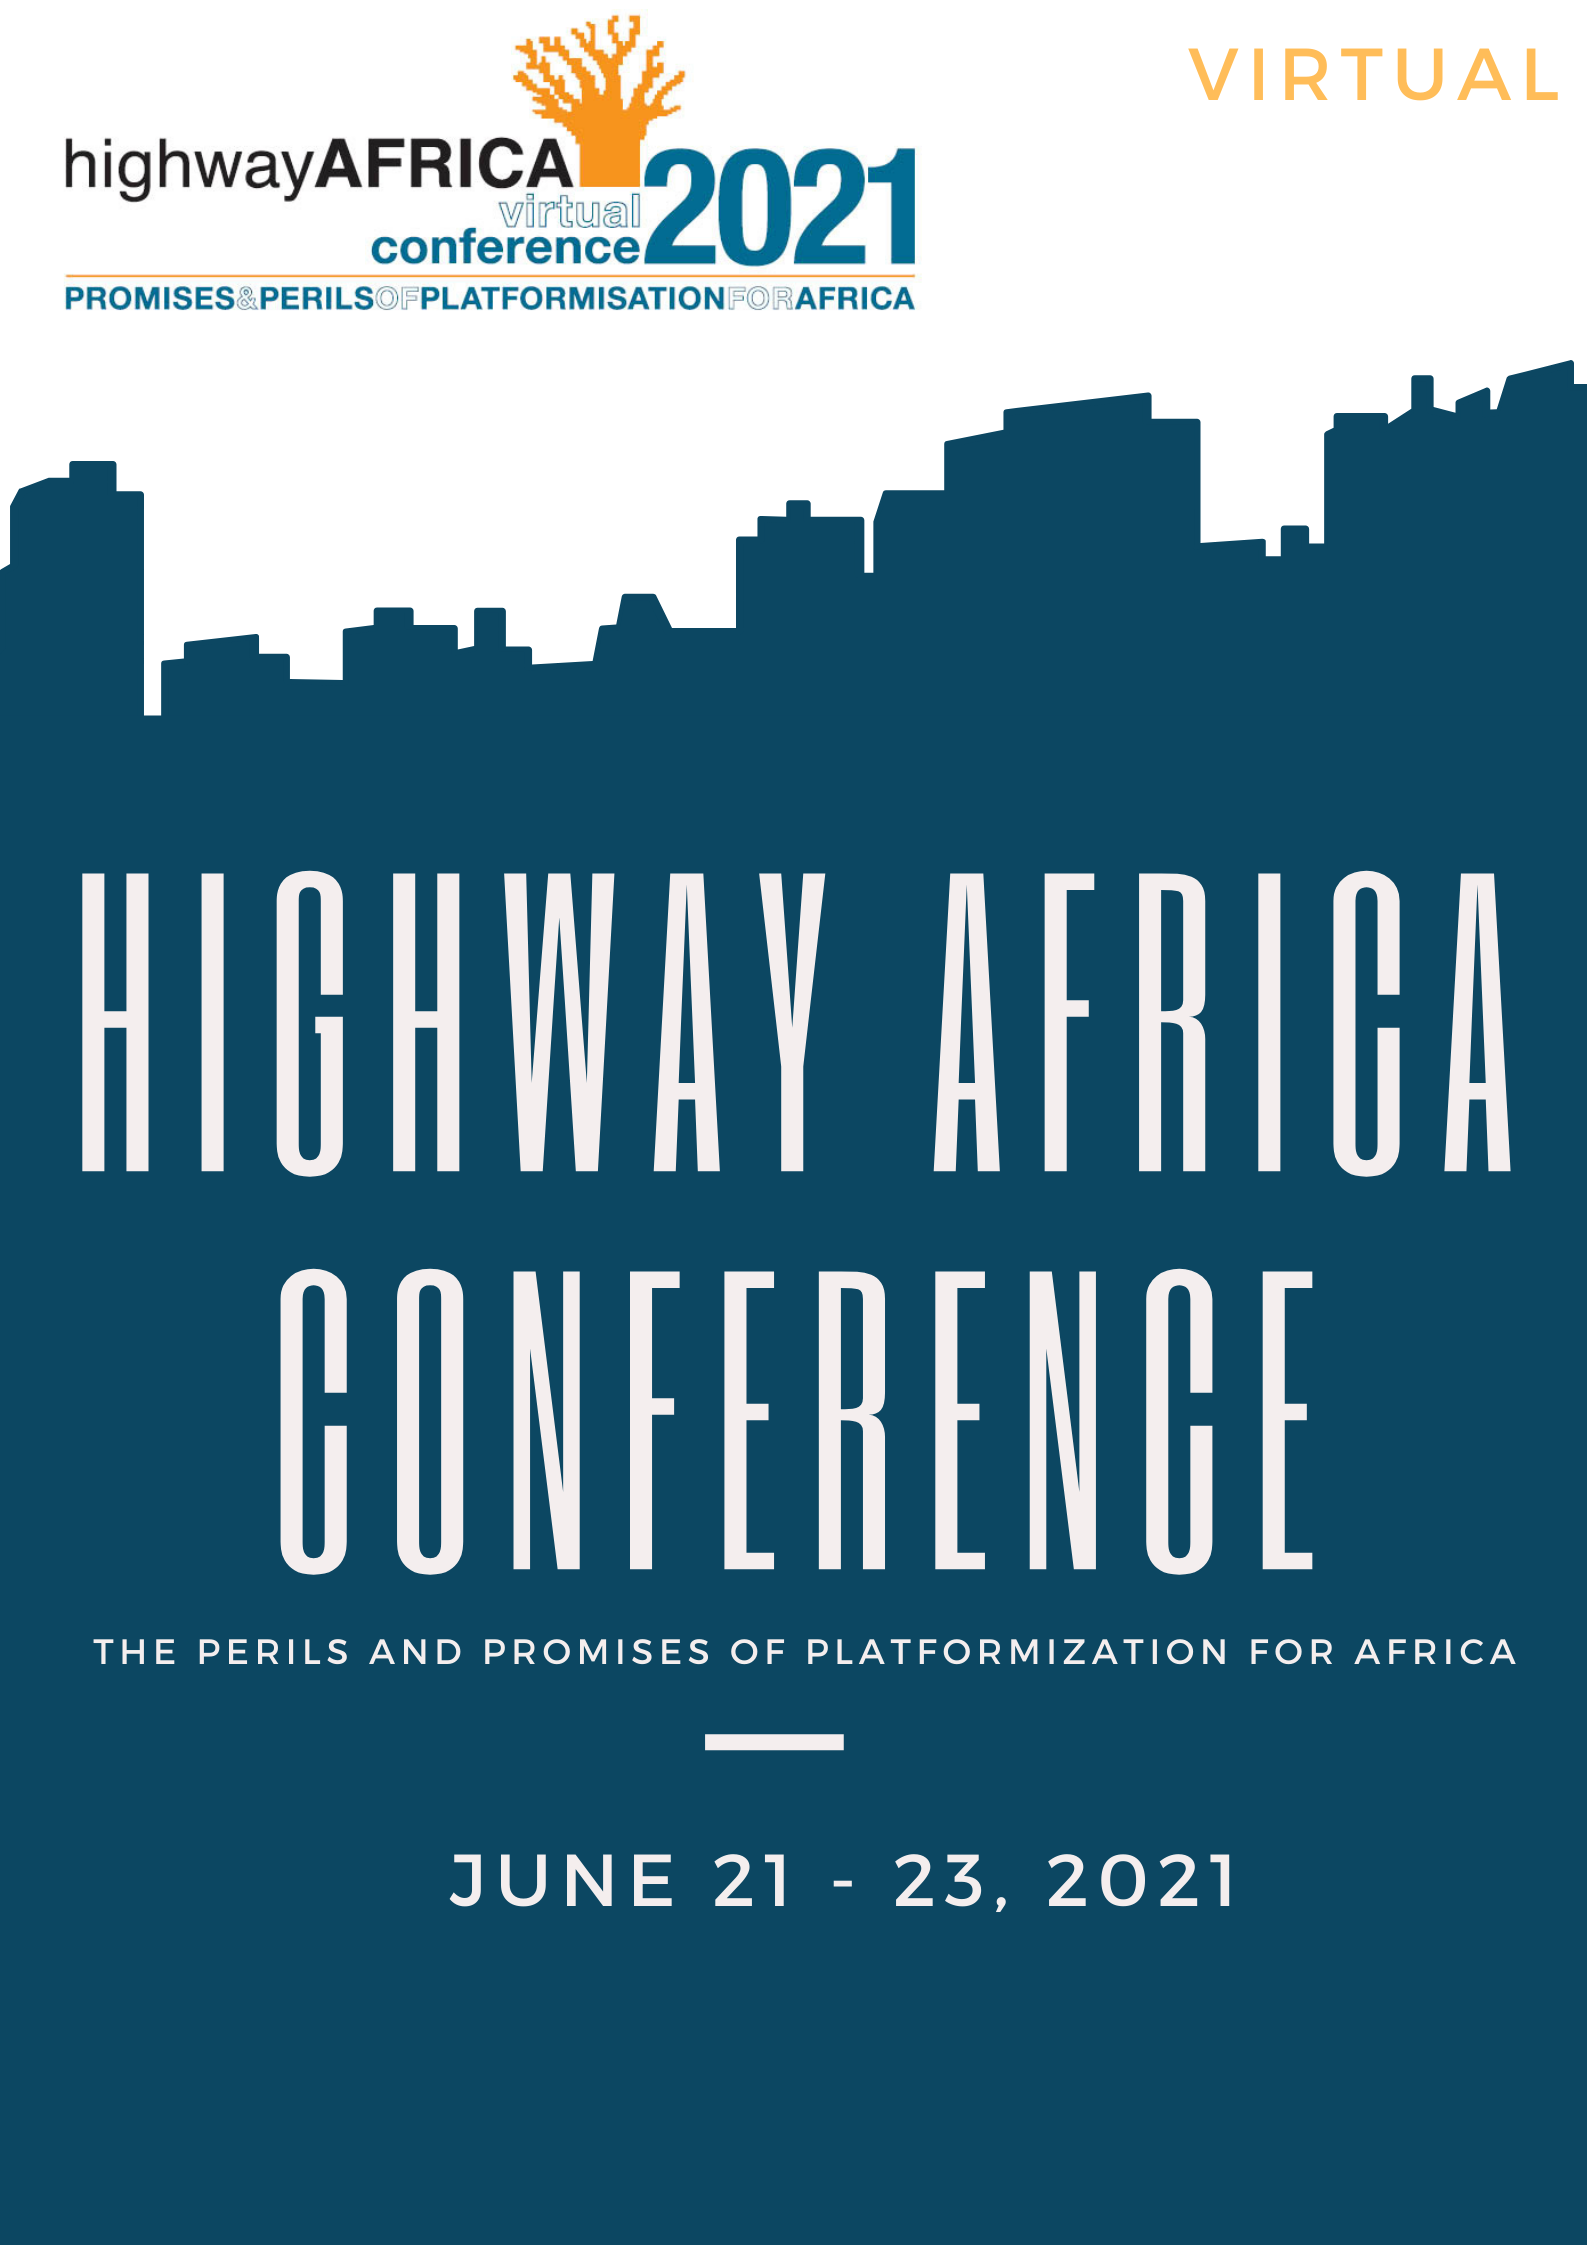 Invitation to register : Highway Africa conference 2021